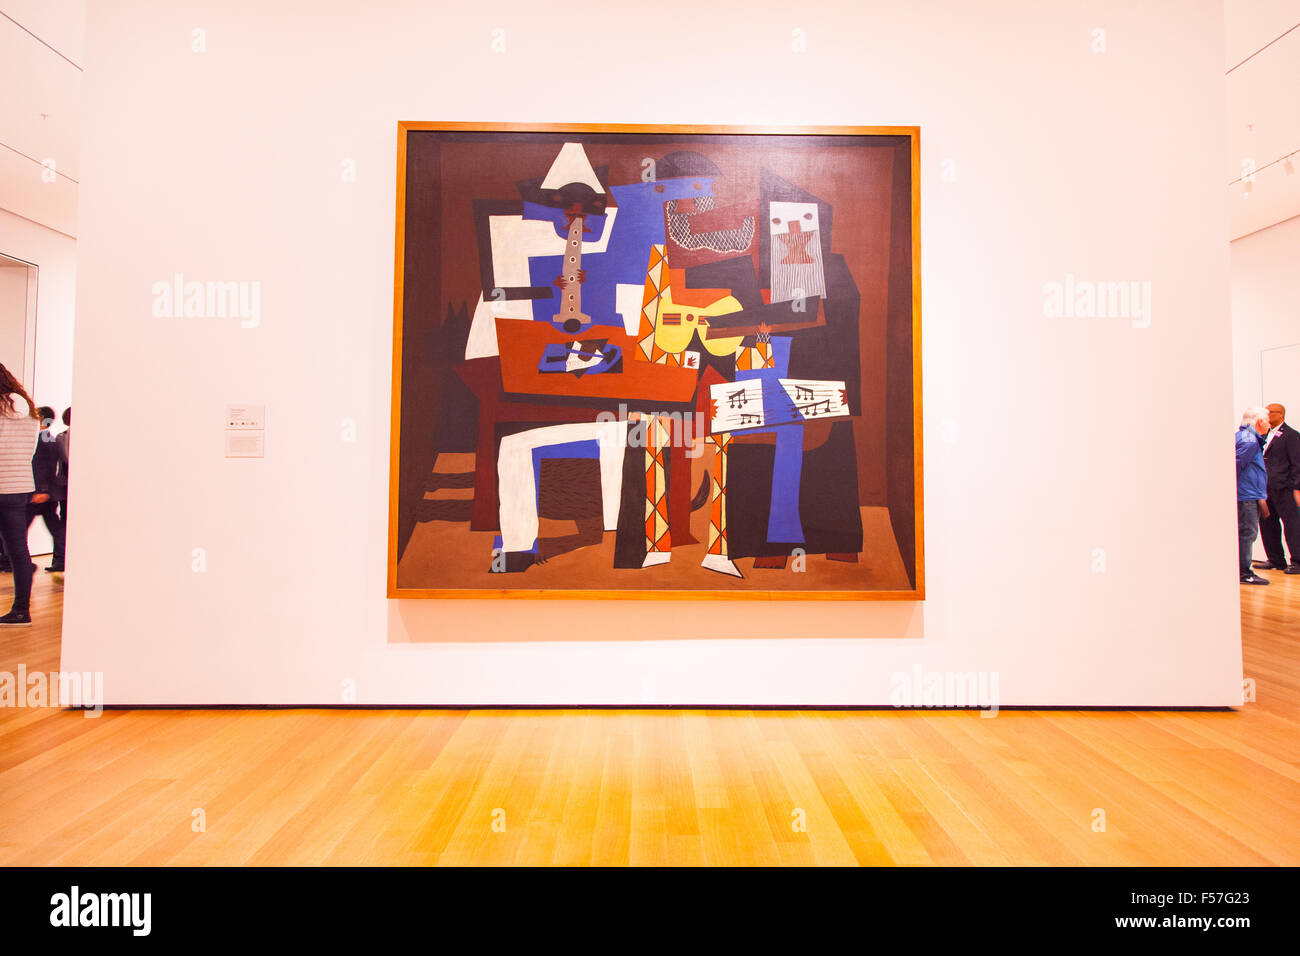 Pablo Picasso Three Musicians 1921 Painting At Moma The Museum Of Stock Photo Alamy